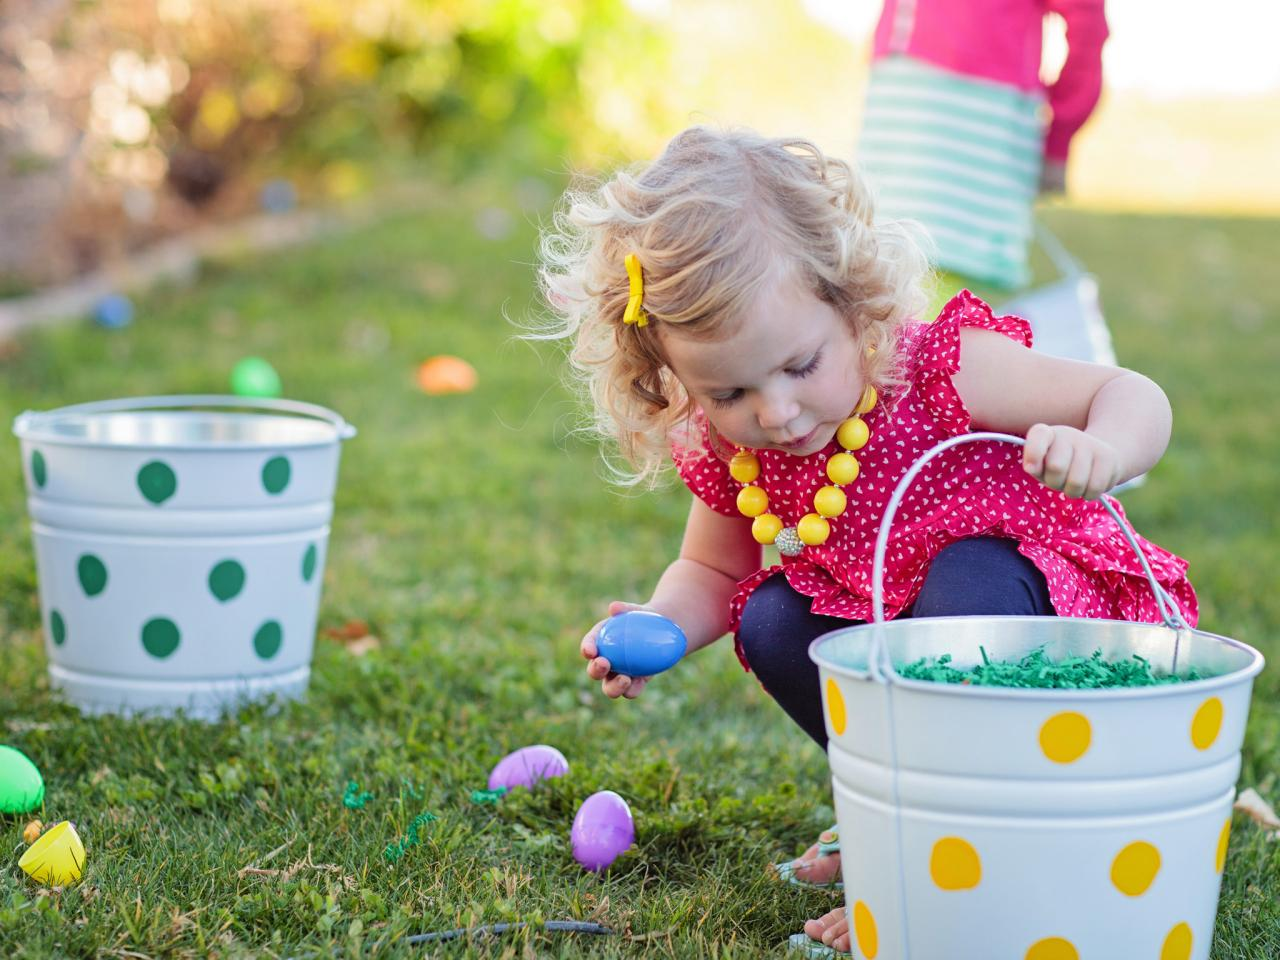 Bring your little one, your yoga mat and enjoy the fun in fresh air! Join us for a FREE Baby Boot Camp class and enjoy Easter Fun for everyone by Dina's Sweet Creations! Easter egg hunt, arts and crafts, surprises for moms and kids! Bring a basket for your little one! 9:30 AM Baby Boot Class 10:30 AM Easter Fun Baby Boot Camp Class 9:30 AM at Red Morton Park Contact Karla Coop for more details at karla.koop@babybootcamp.com or (913) 626 6467 Easter Egg Hunt Red Morton Park Green meadow by Valota Road (next to the playground) March 25, 10:30 AM contact Dina's Sweet Creations for more details: http://www.dinassweetcreations.com/ Email: info@dinassweetcreations.com Phone: (650) 889 0563